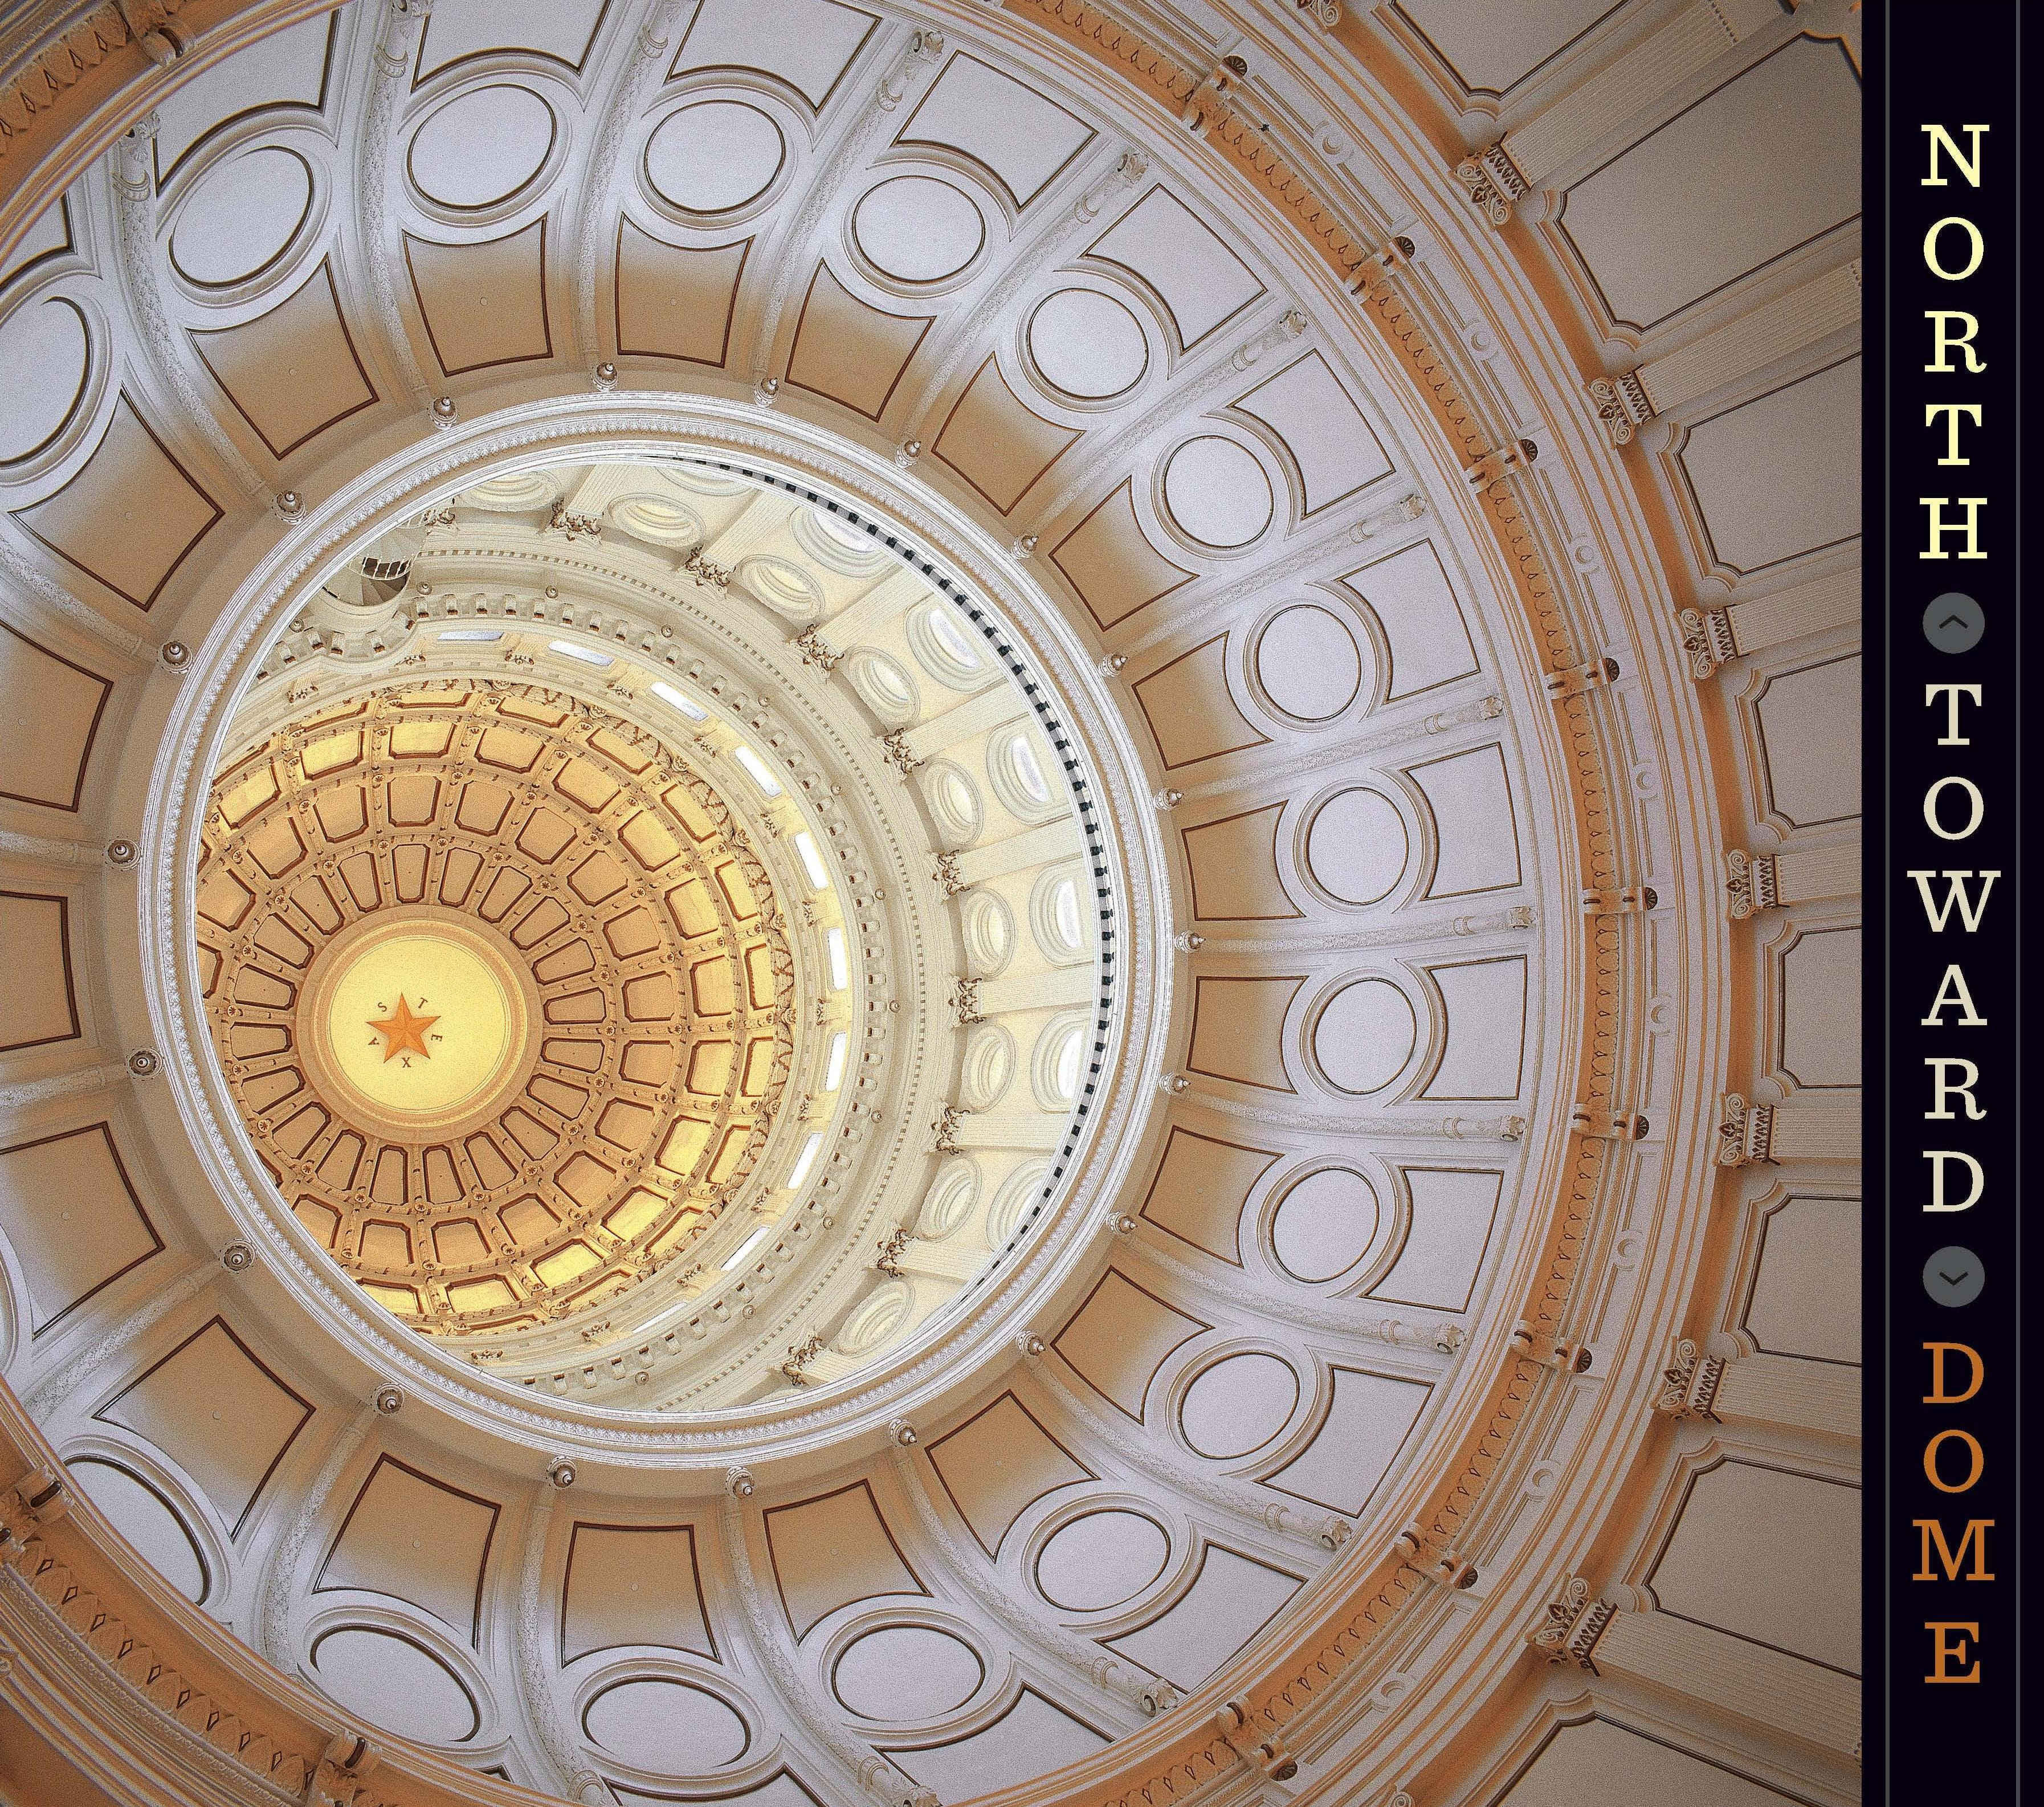 An interior view of the inner dome (the Texas star is 218 feet above the rotunda.)